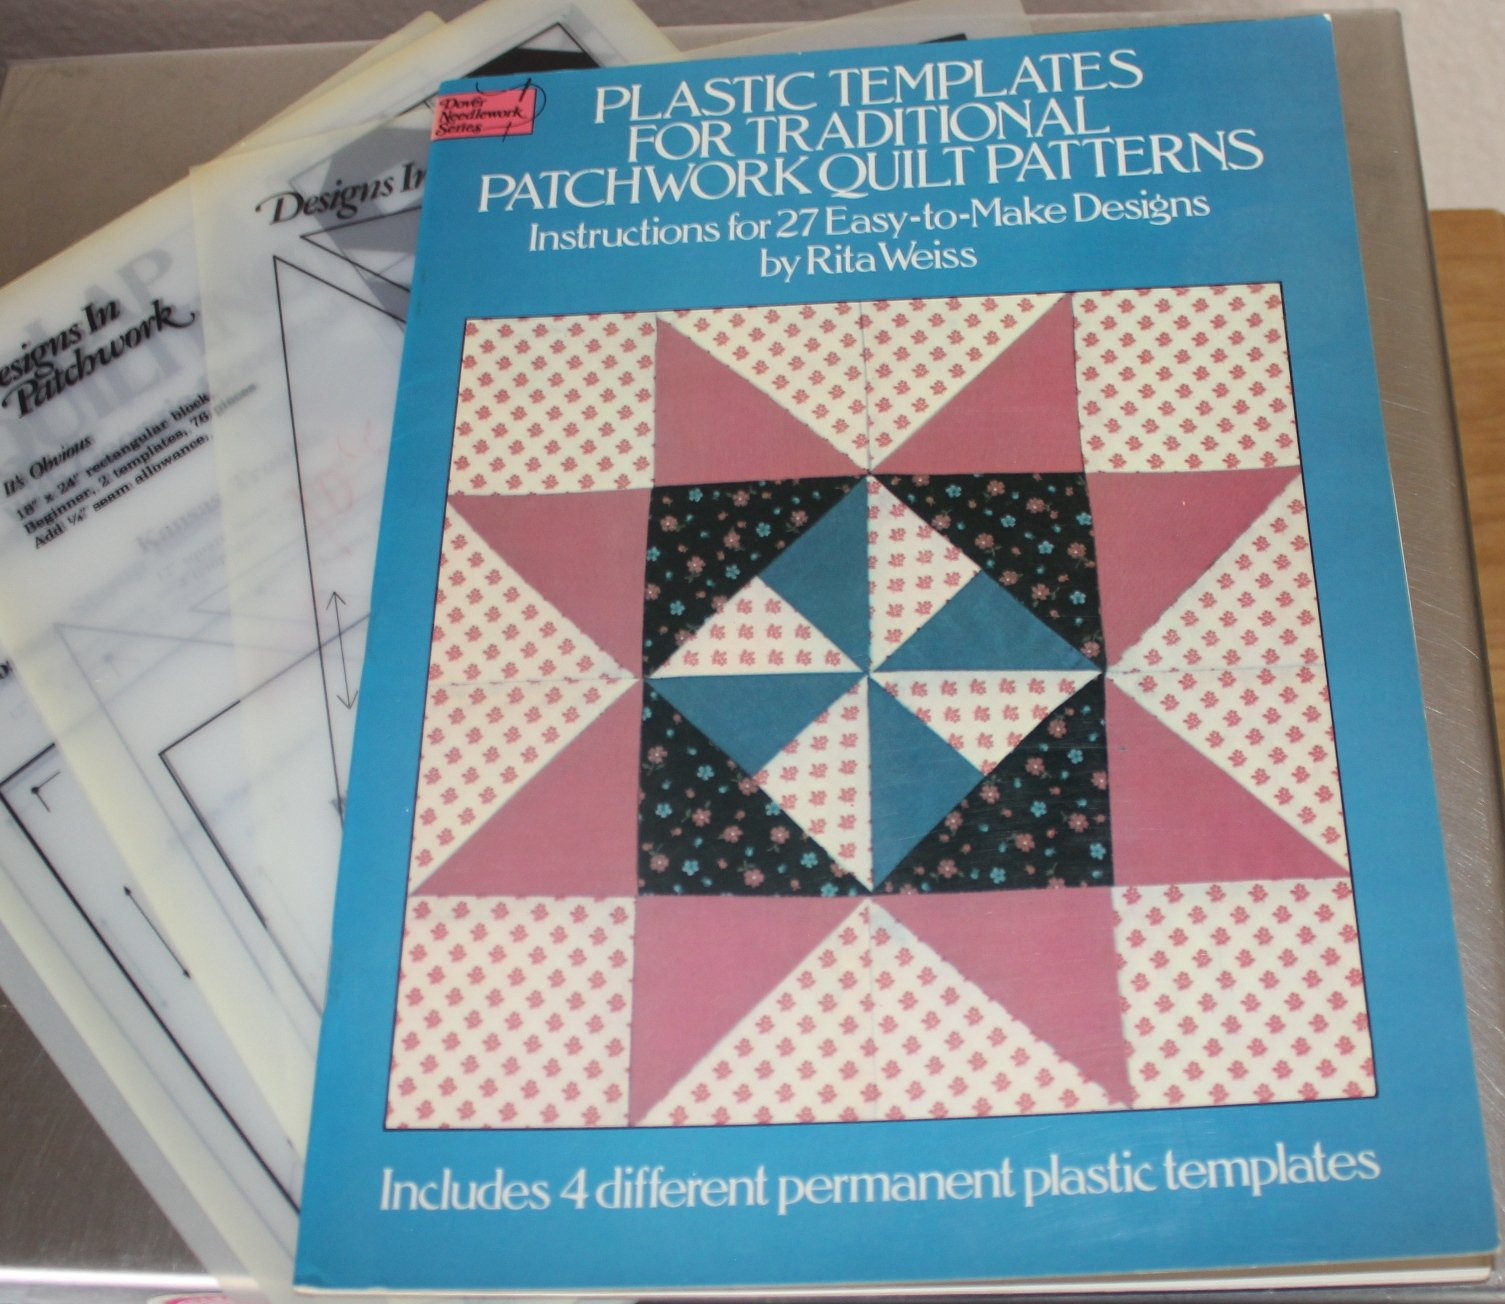 traditional patchwork quilt patterns with plastic templates instructions for 27 amazoncom books